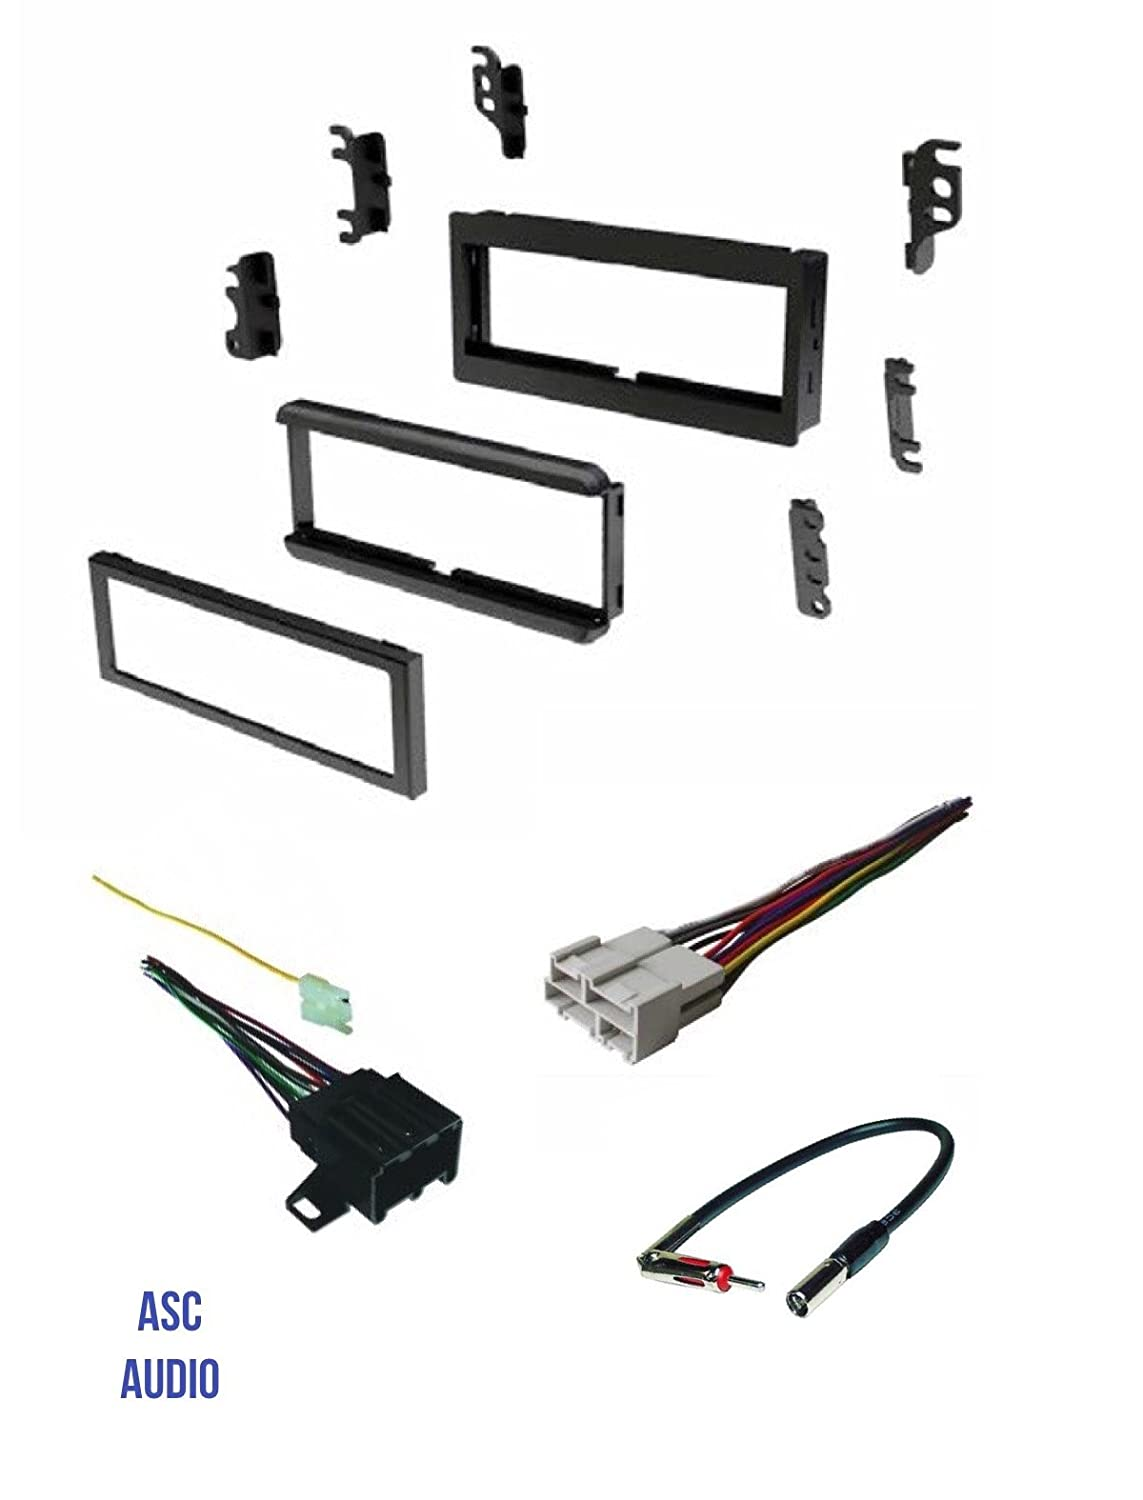 Asc Audio Car Stereo Install Dash Kit Wire Harness And 2000 Buick Lasabre Wiring Adapters Antenna Adapter For Installing A Single Din Aftermarket Radio Some Gm